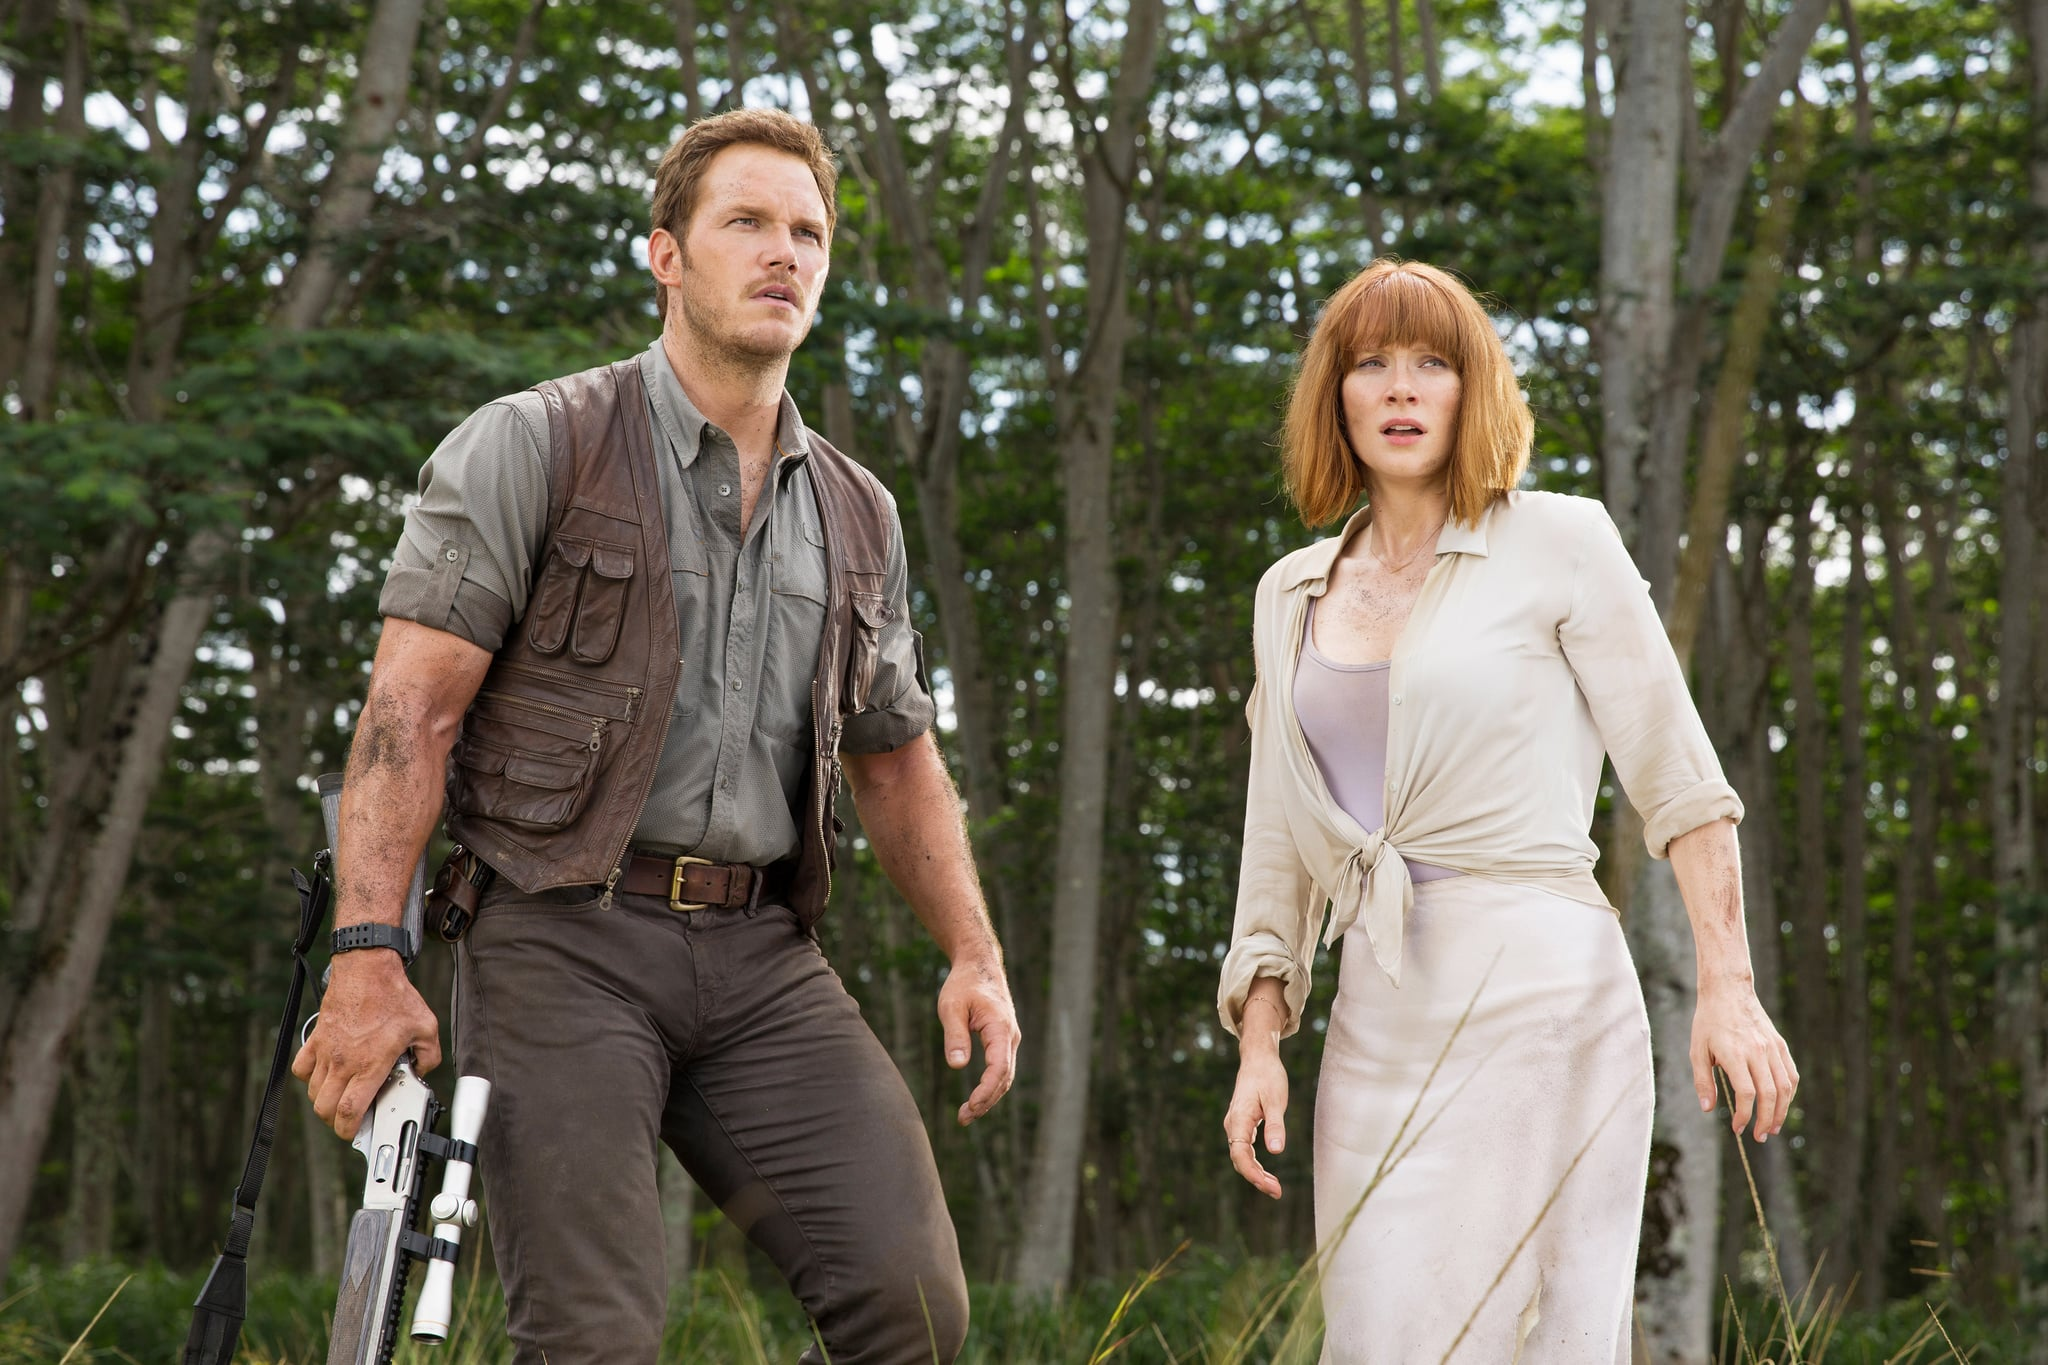 JURASSIC WORLD, from left: Chris Pratt, Bryce Dallas Howard, 2015. ph: Chuck Zlotnick/Universal Pictures/courtesy Everett Collection